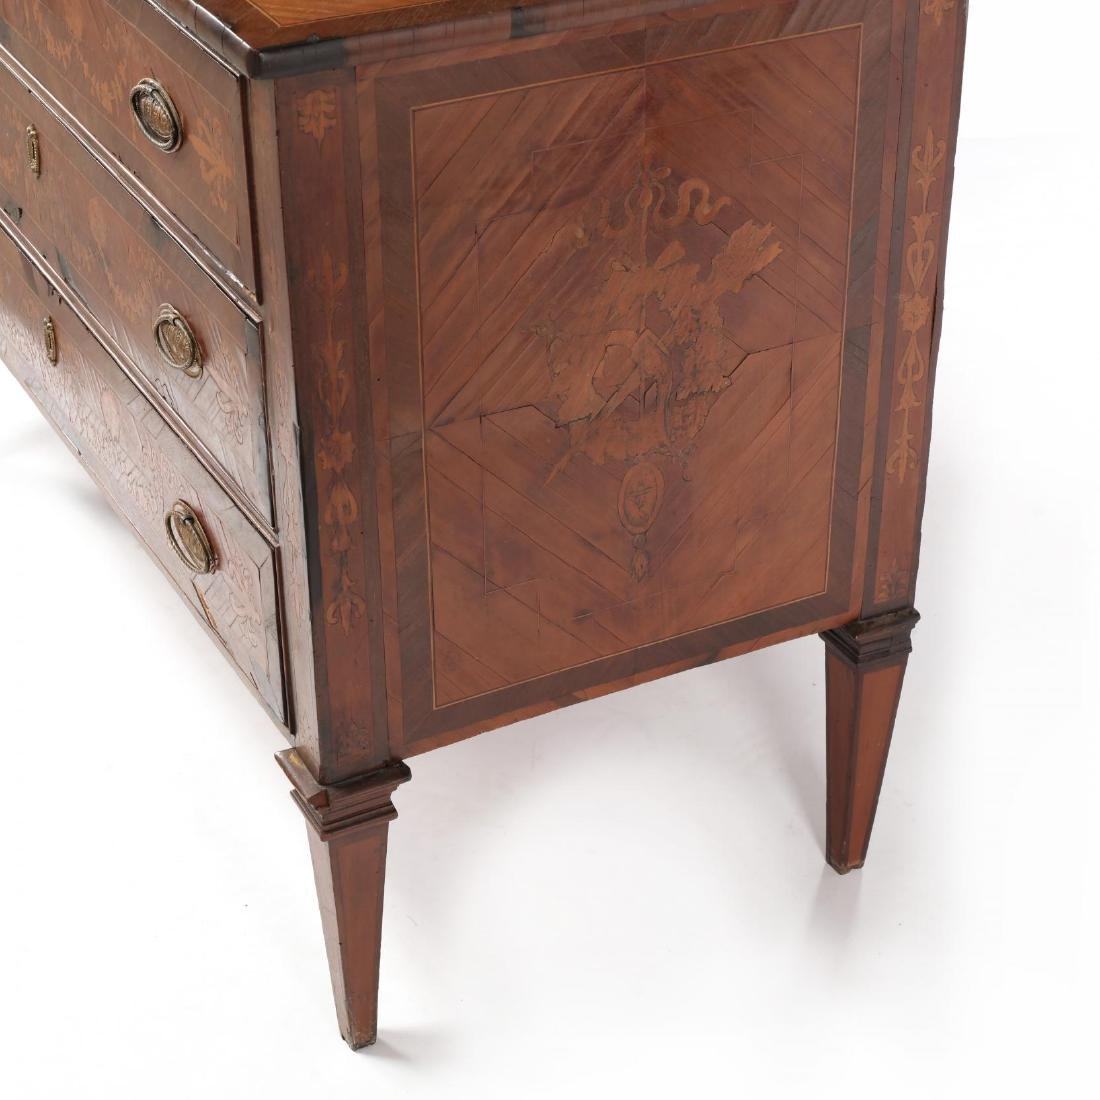 Italian Marquetry Inlaid Commode - 5